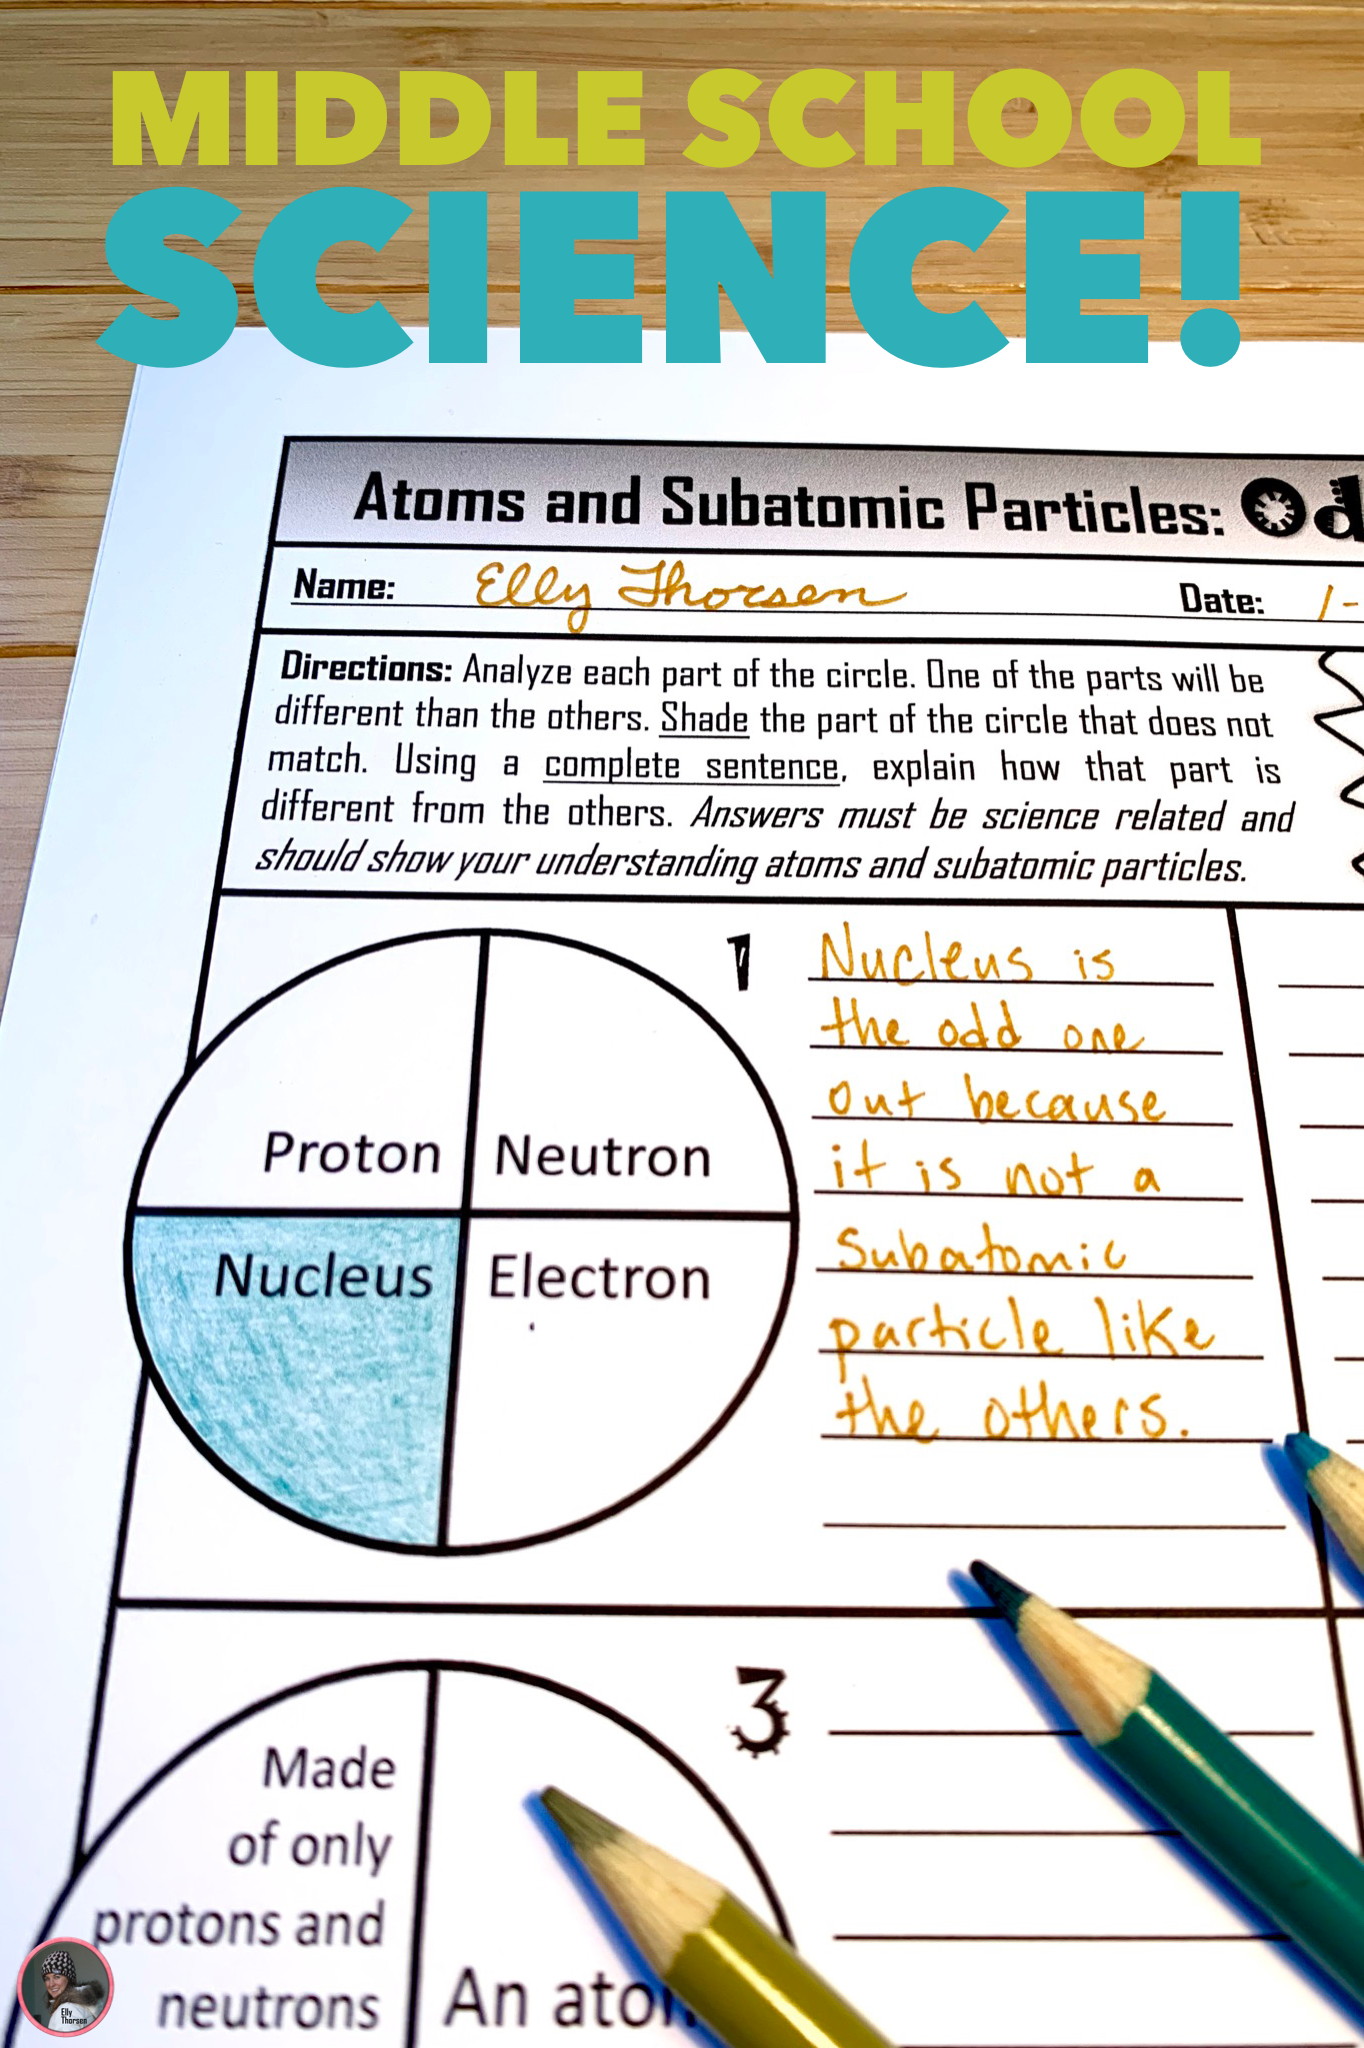 medium resolution of Atoms and Subatomic Particles Critical Thinking Worksheet for Middle School  Physical Science in 2020   Physical science middle school